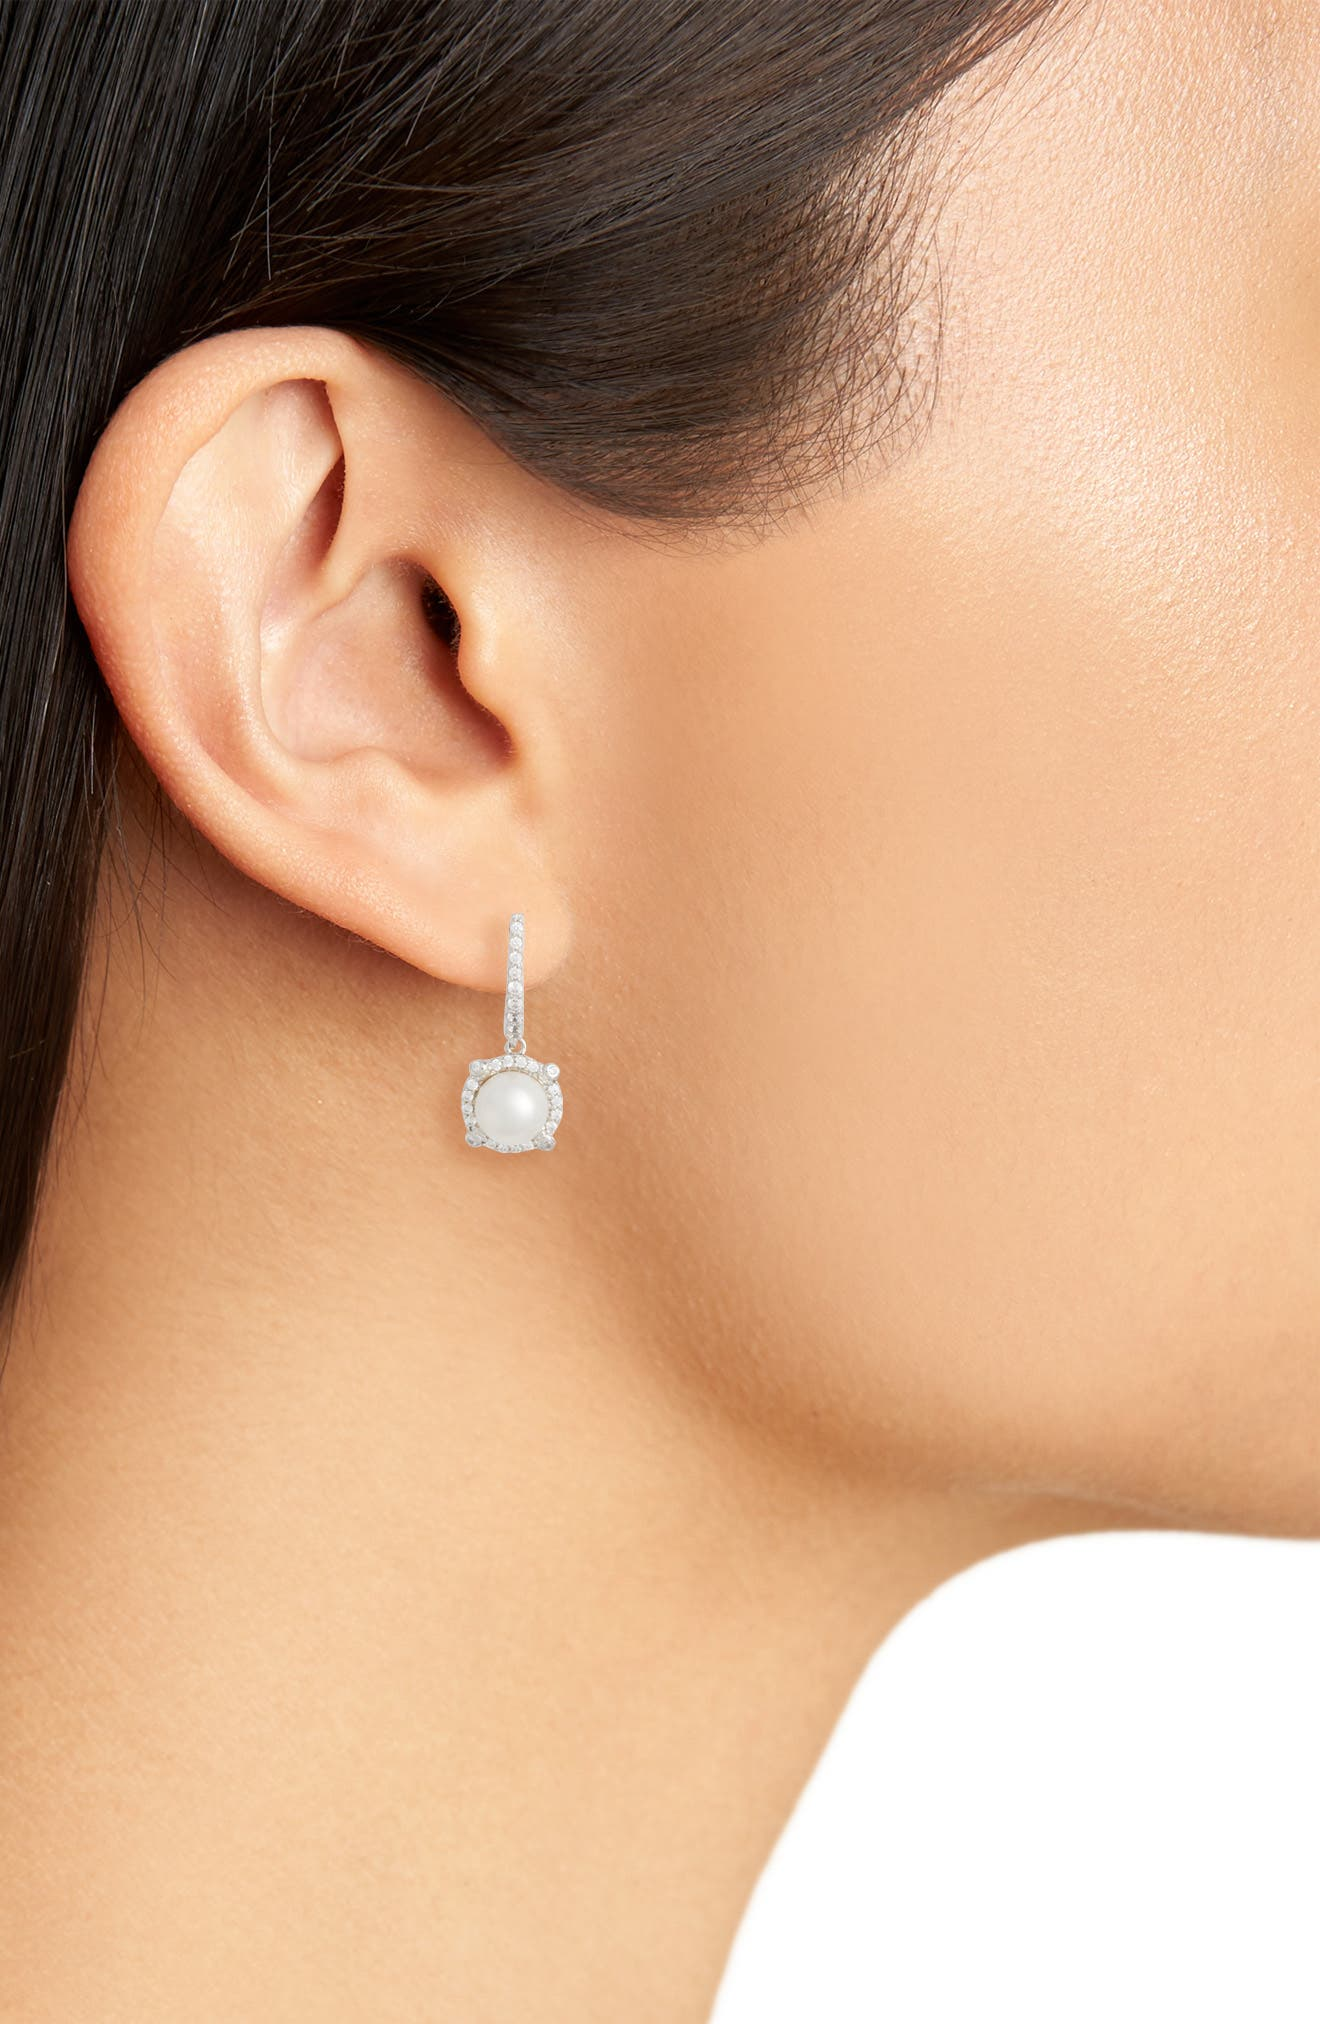 Simulated Diamond & Pearl Drop Earrings,                             Alternate thumbnail 2, color,                             Silver/ Pearl/ Clear